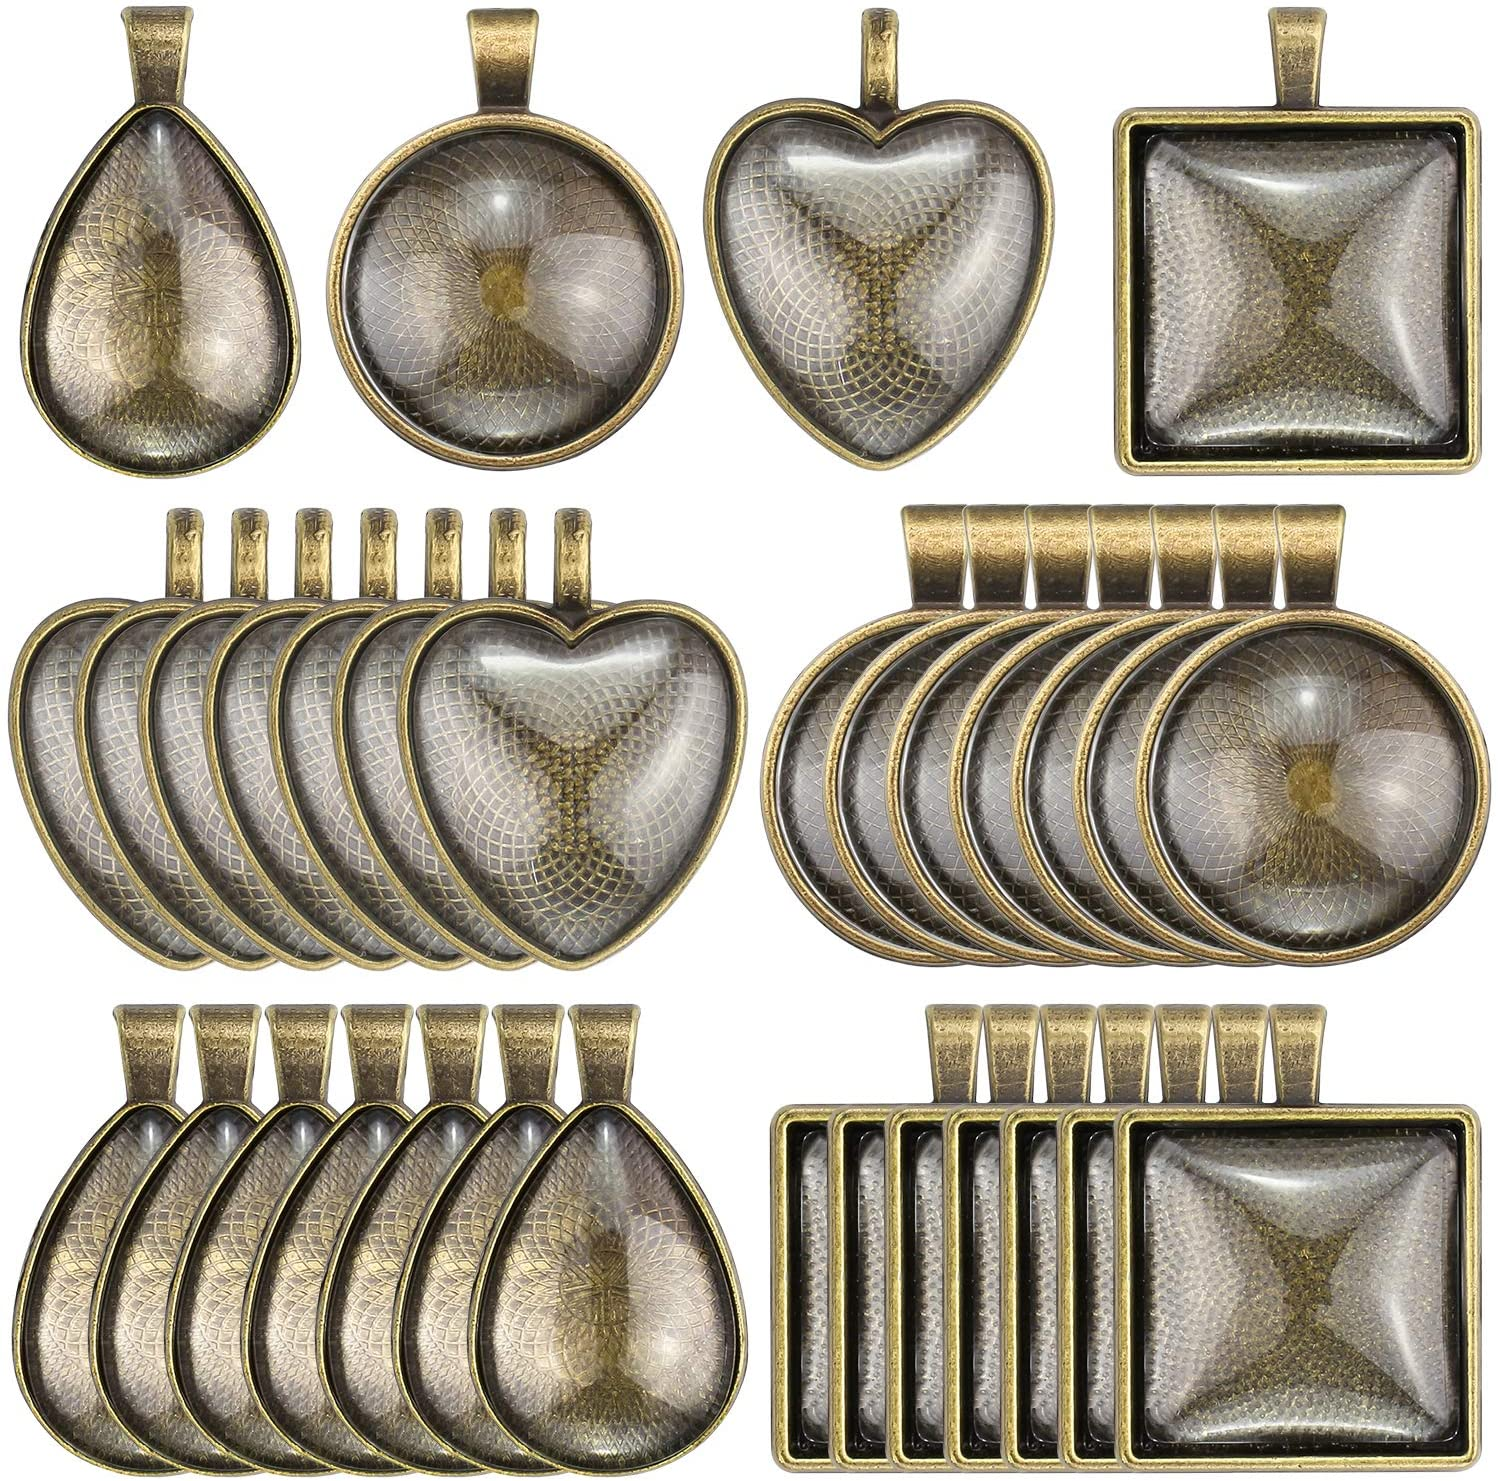 Maicreafie 64 Pieces 4 Styles Pendant Trays 32pcs Round & Square & Heart & Teardrop and 32pcs Bright Glass Cabochon Dome Tiles for Crafting DIY Jewelry Gift Making, Bronze